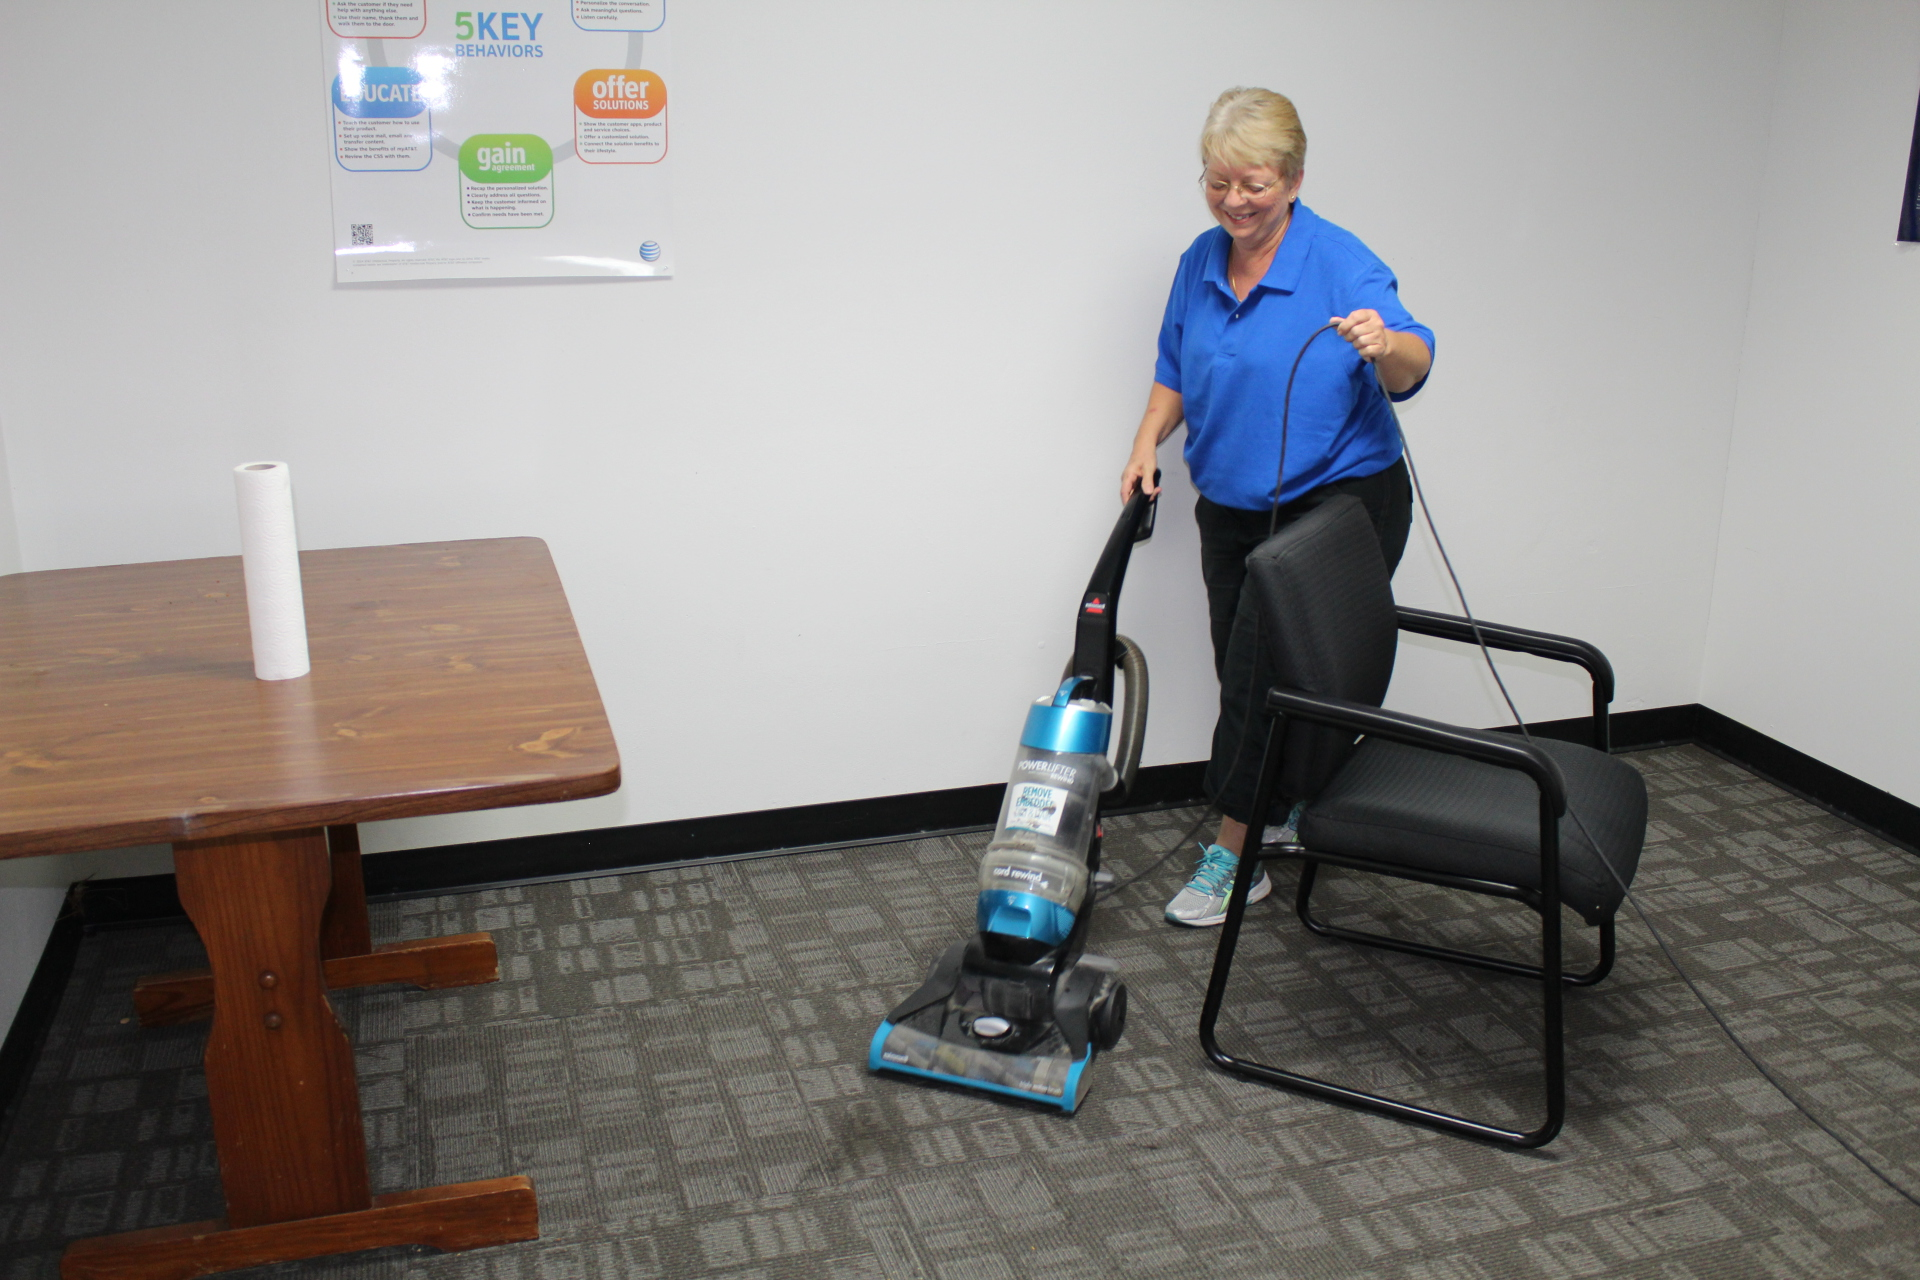 Professional Cleaning - Commercial, Industrial & Residential Services Ocala Inverness Homosassa Crystal River Beverly Hills Florida